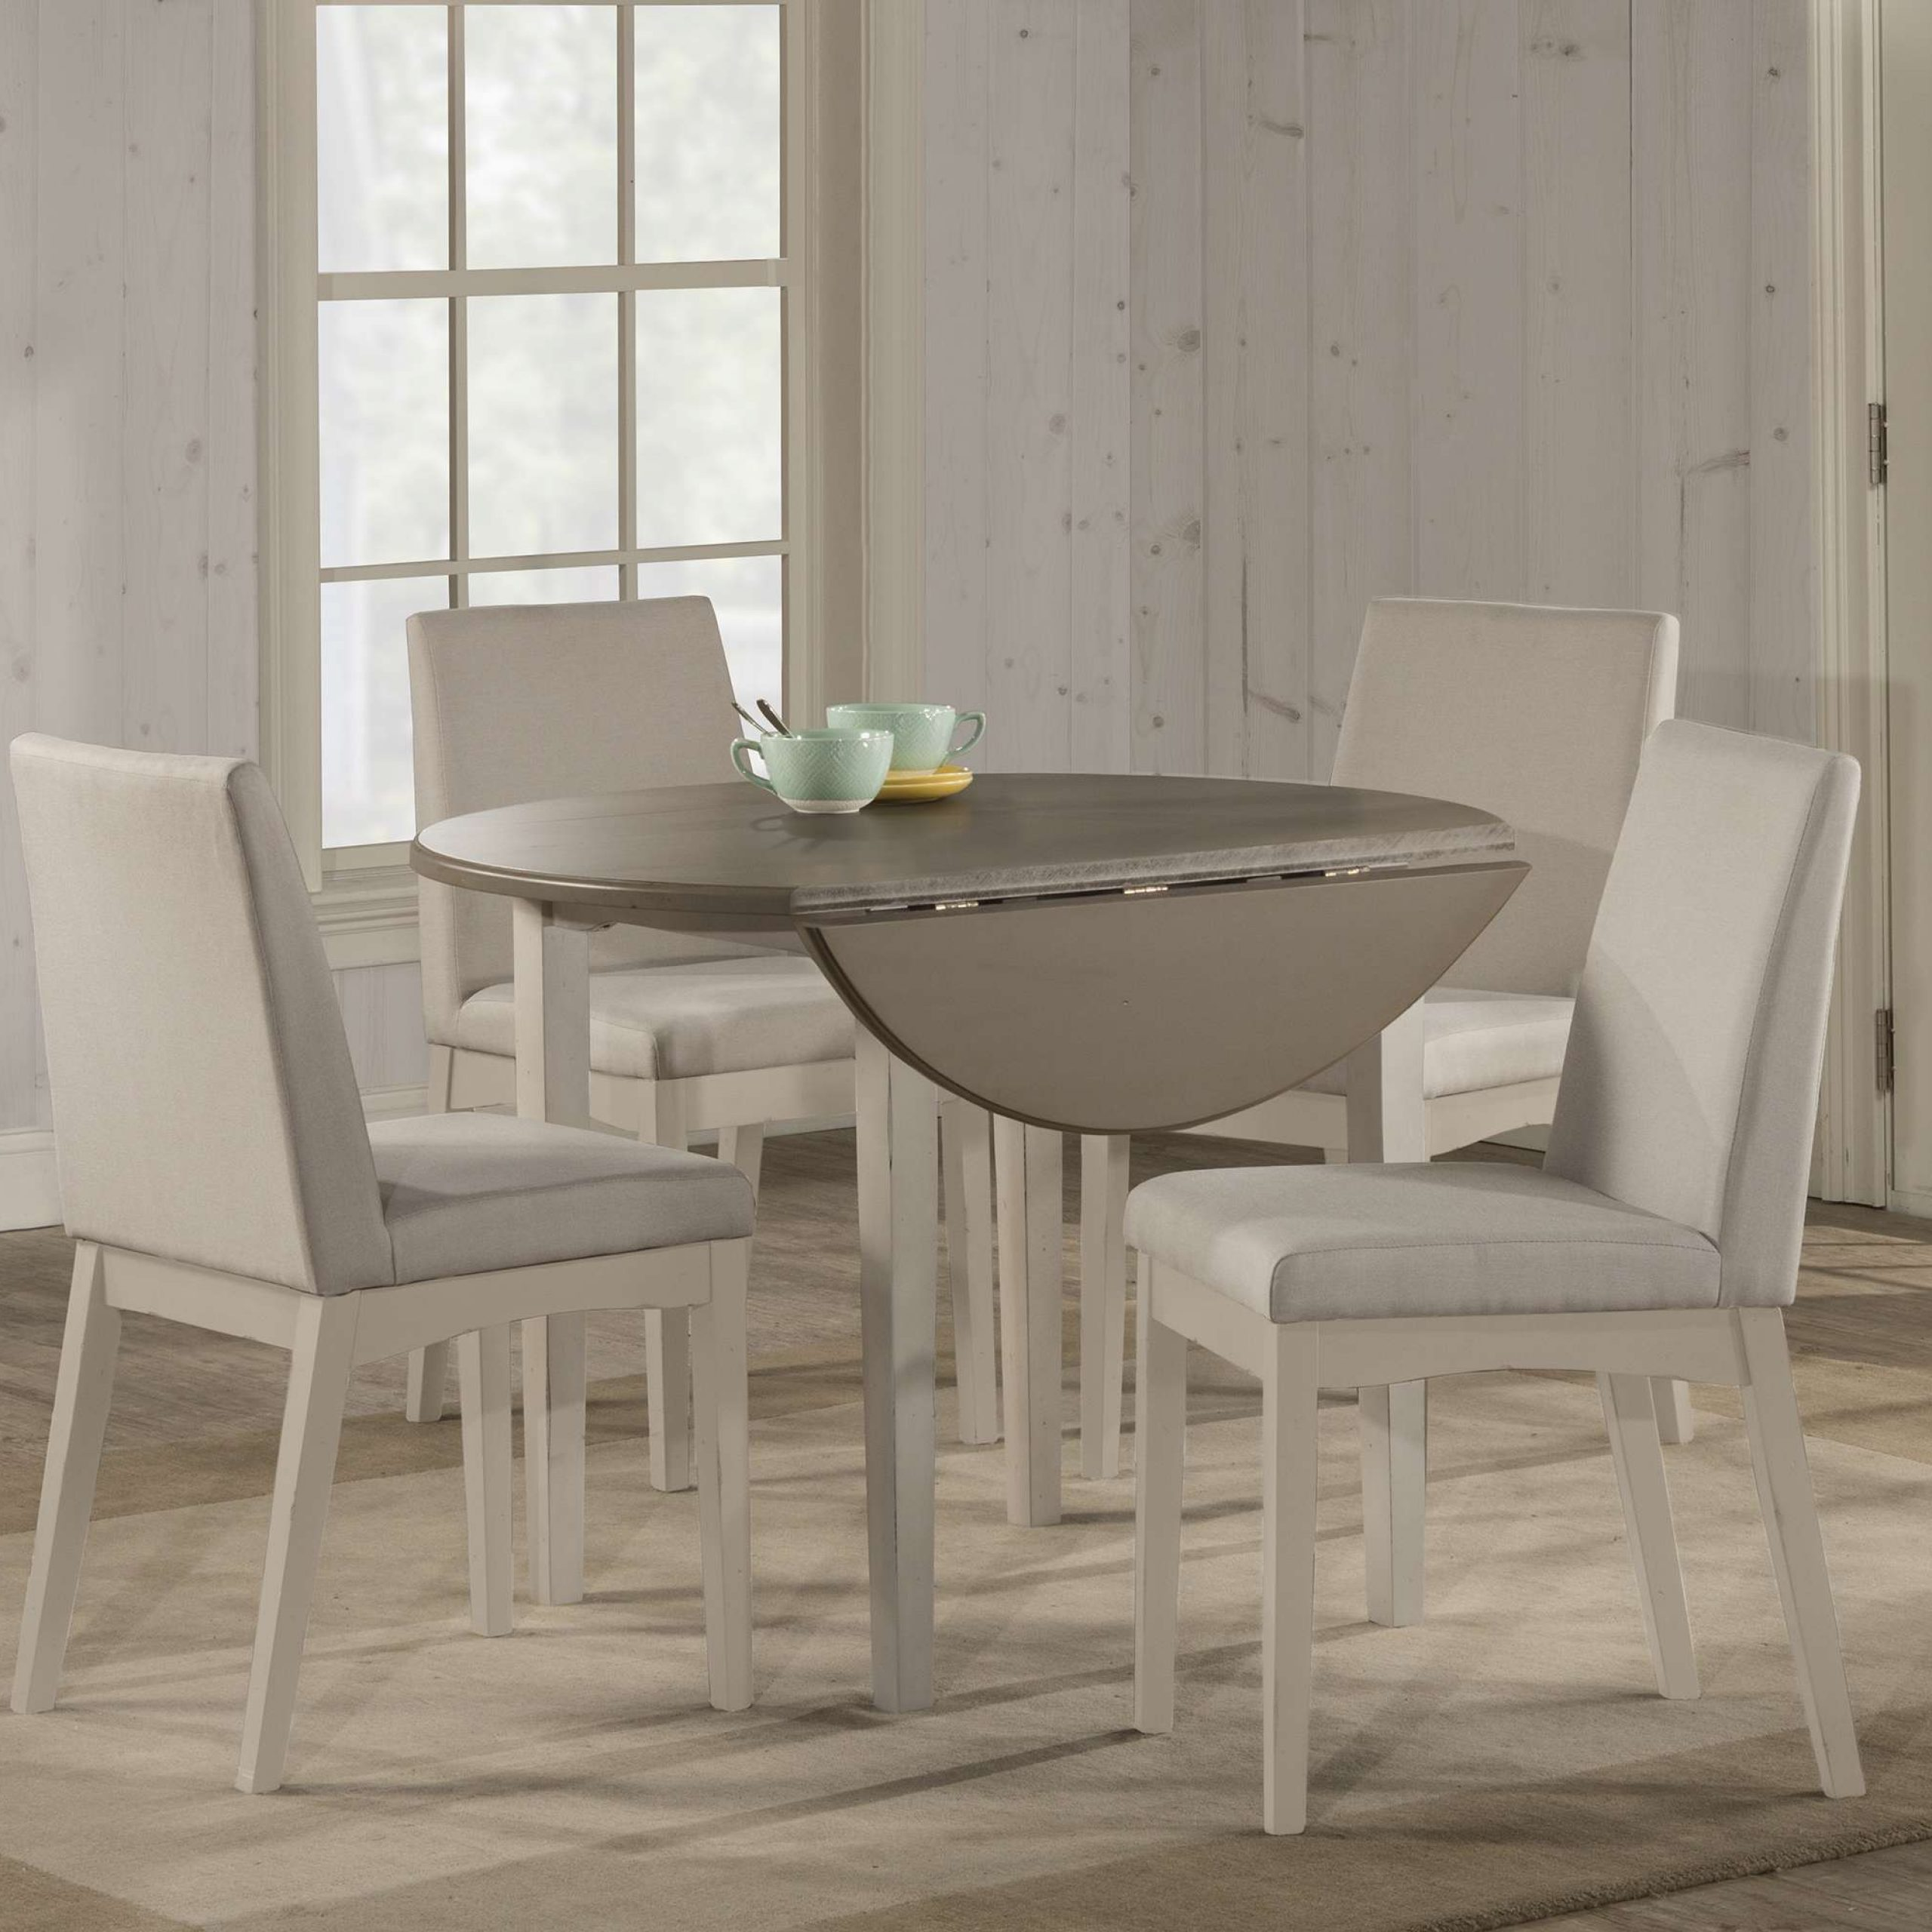 2020 Transitional Drop Leaf Casual Dining Tables Intended For Hillsdale 4542 (View 19 of 25)